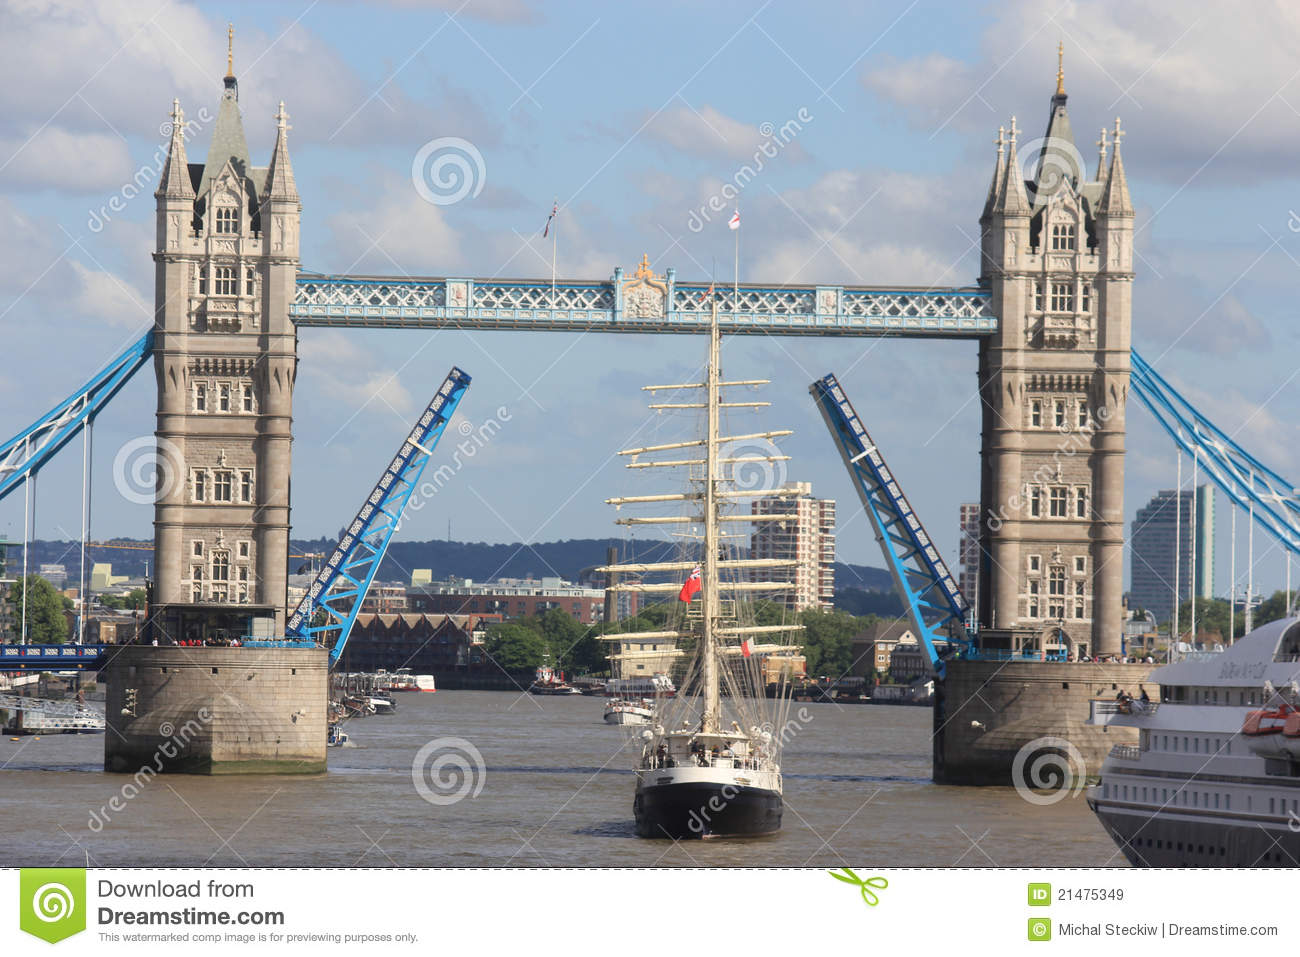 Free Images Traveling People Airport Bridge Business: London Tower Bridge Opening Editorial Stock Image